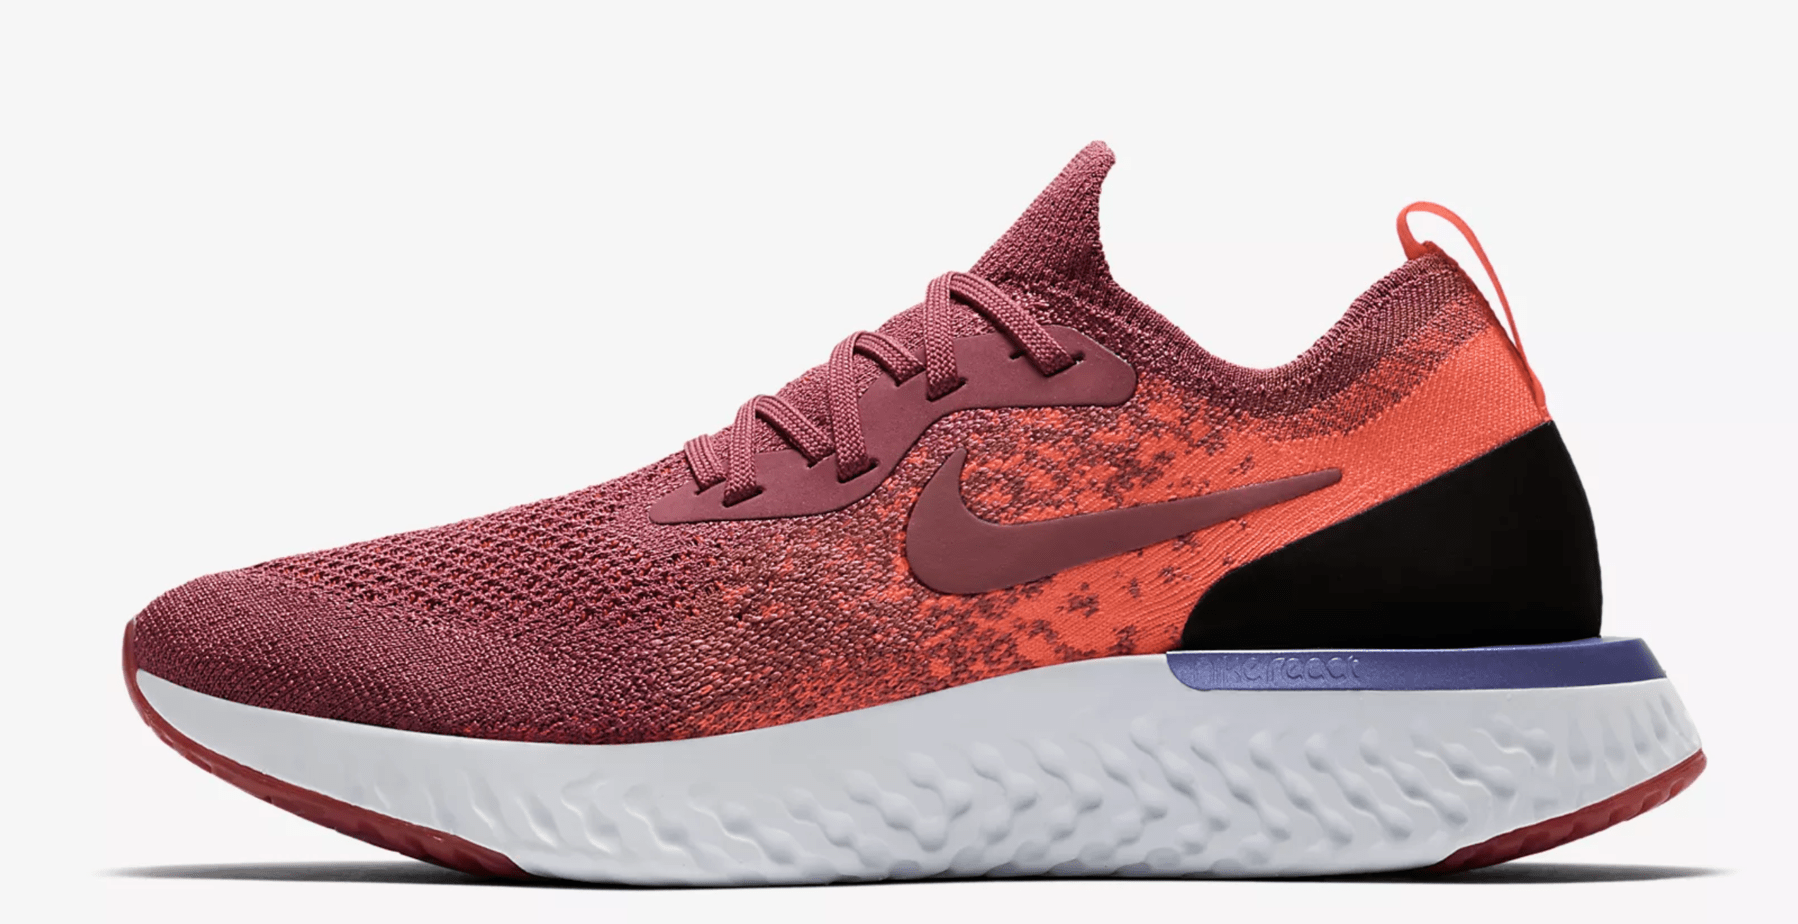 100% authentic c8e79 5f280 ... norway nike epic react flyknit crimson release date coming soon price  150. color rust pink